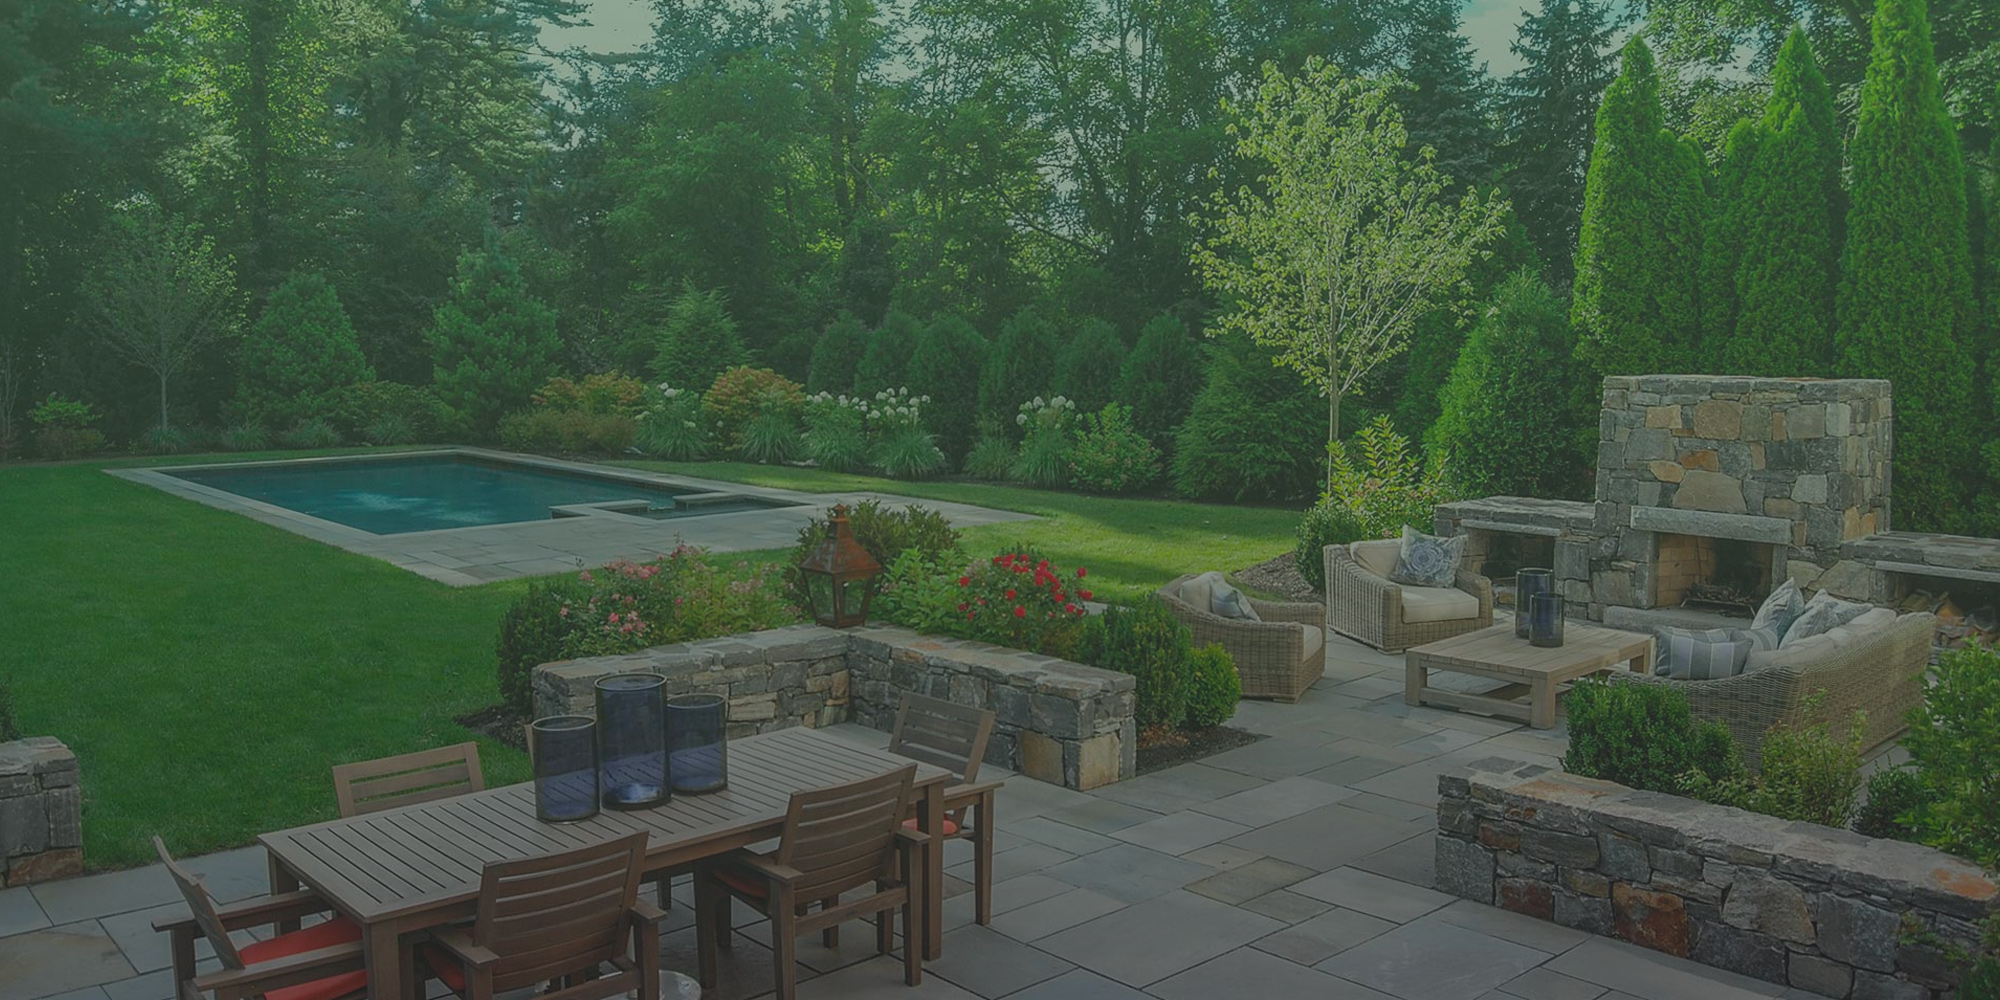 Unique Landscapes to Transform Your Space   Our landscapers can transform even the simplest space into a beautiful backyard garden or front lawn oasis.   Get a Quote